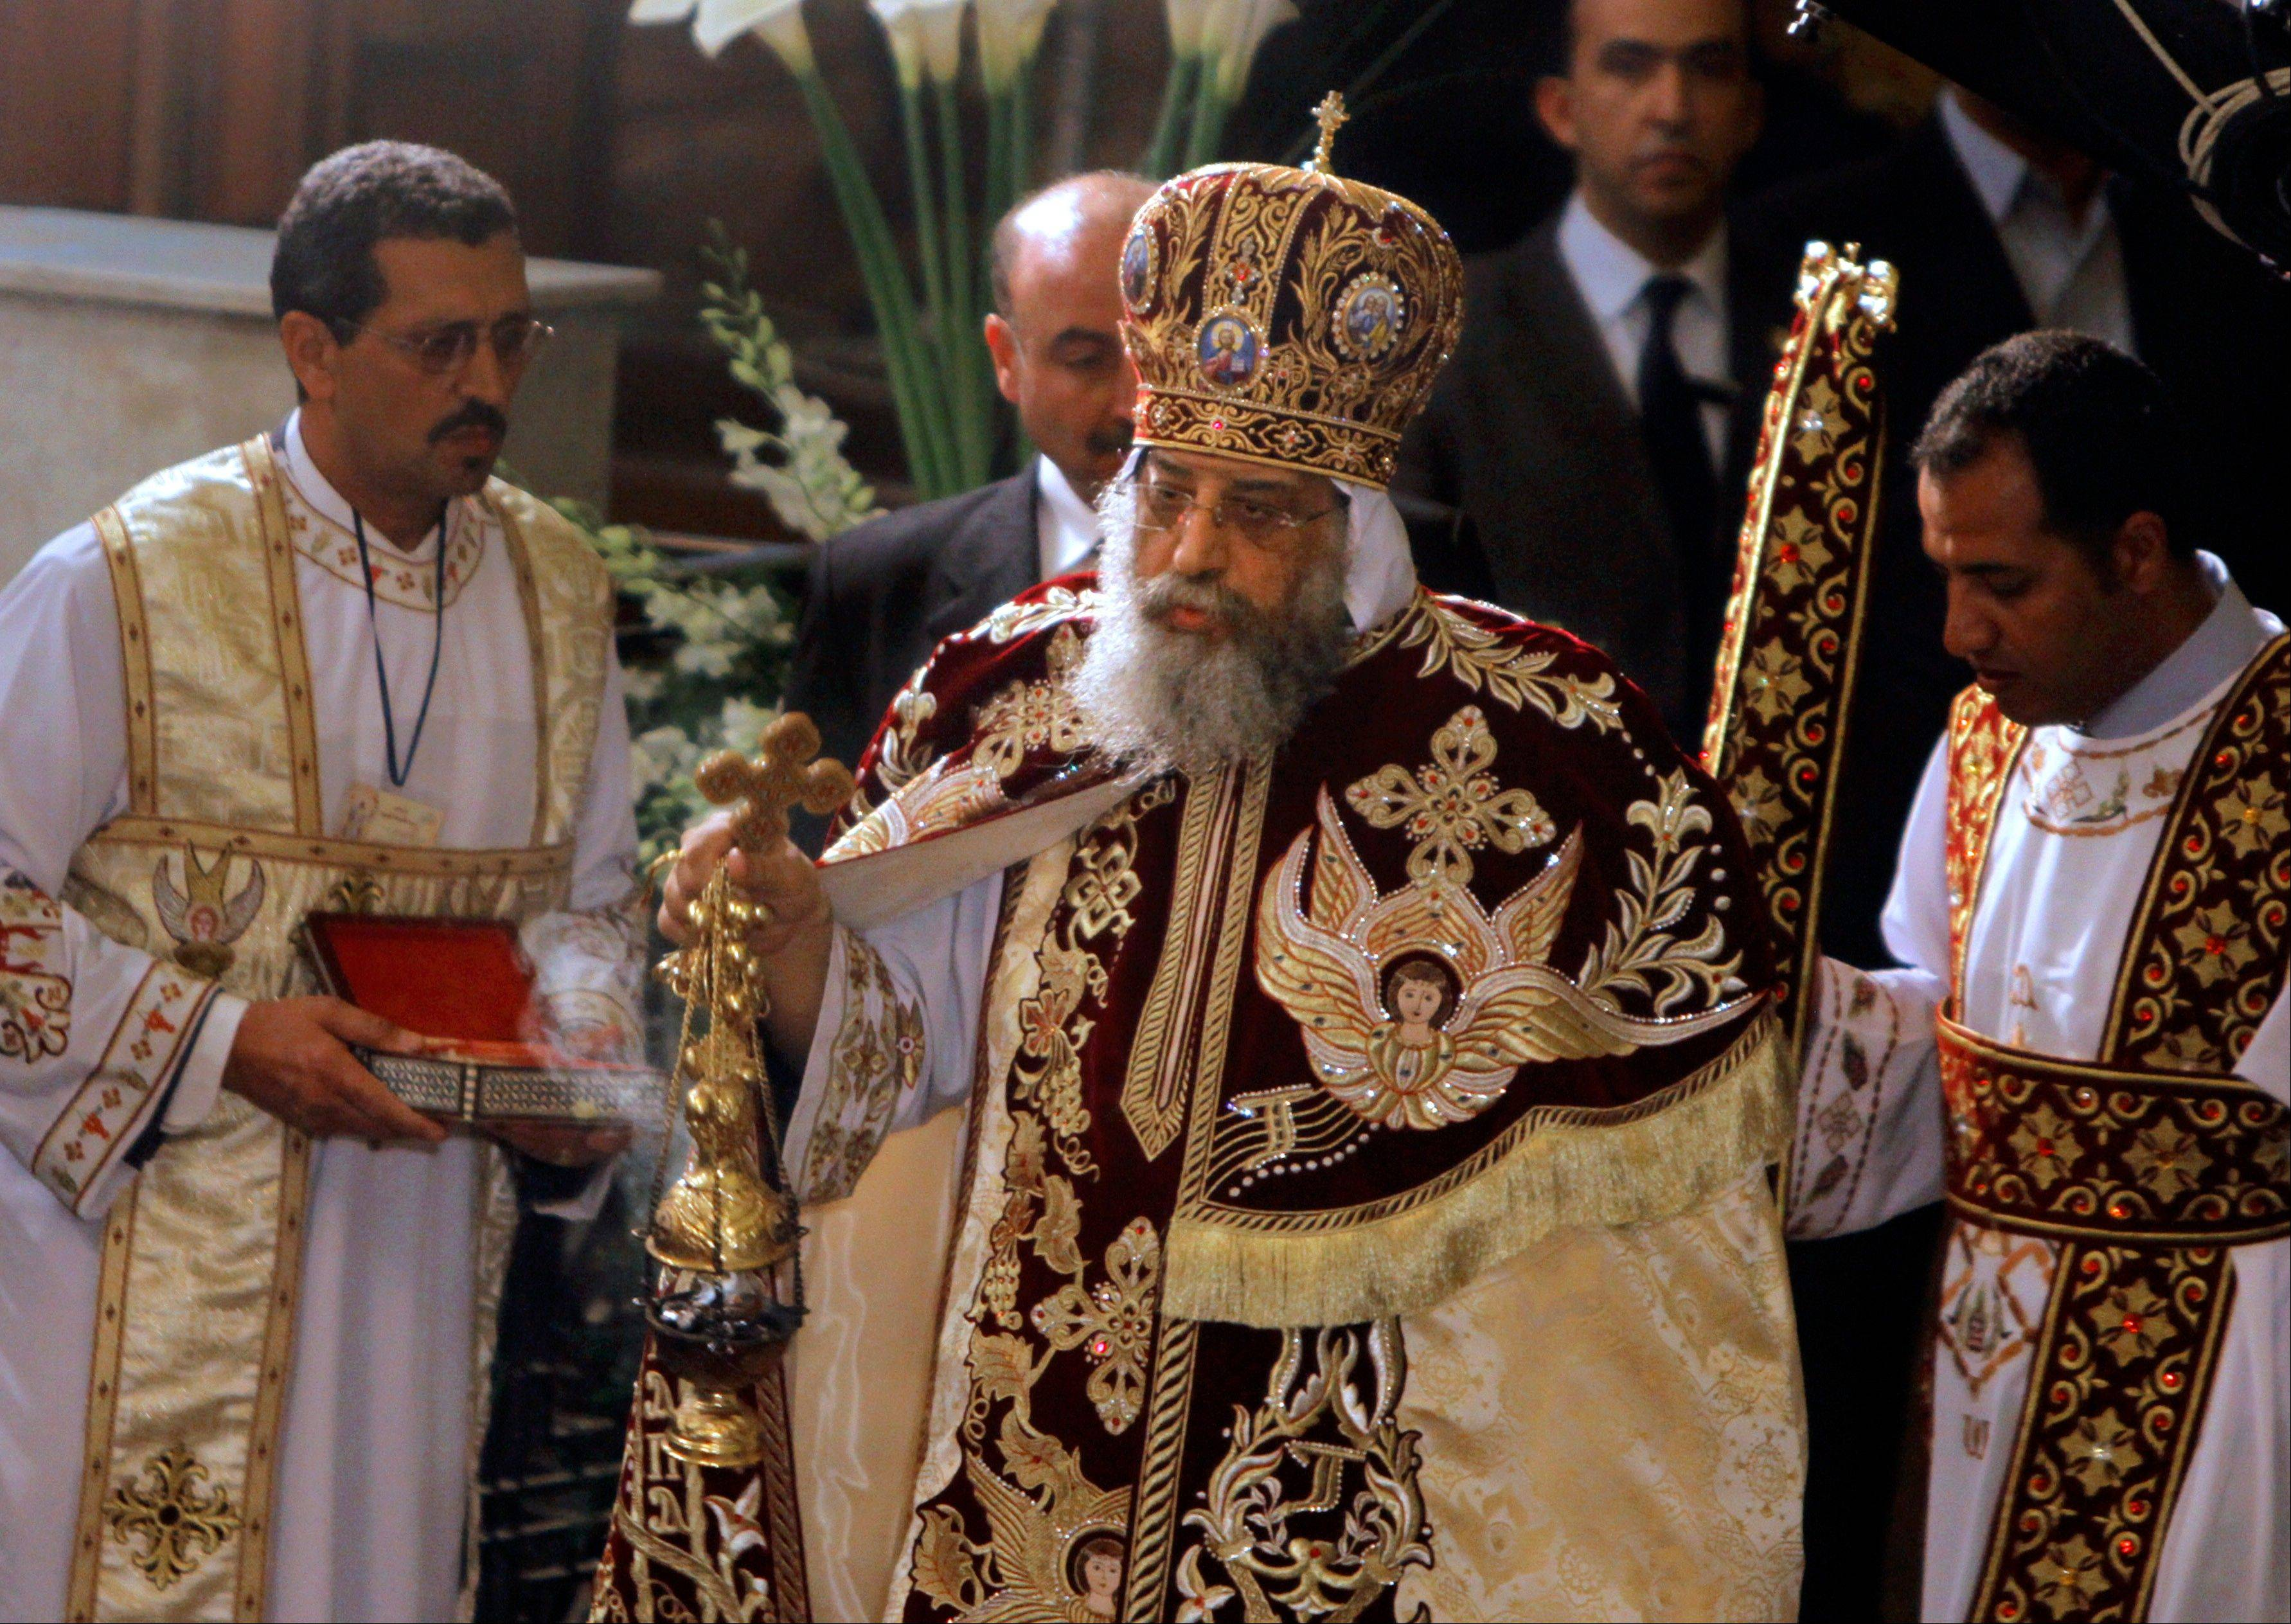 Pope Tawadros II, the 118th pope of the Coptic Church of Egypt, leads the Easter Mass Saturday at St. Mark�s Cathedral in Cairo, Egypt.